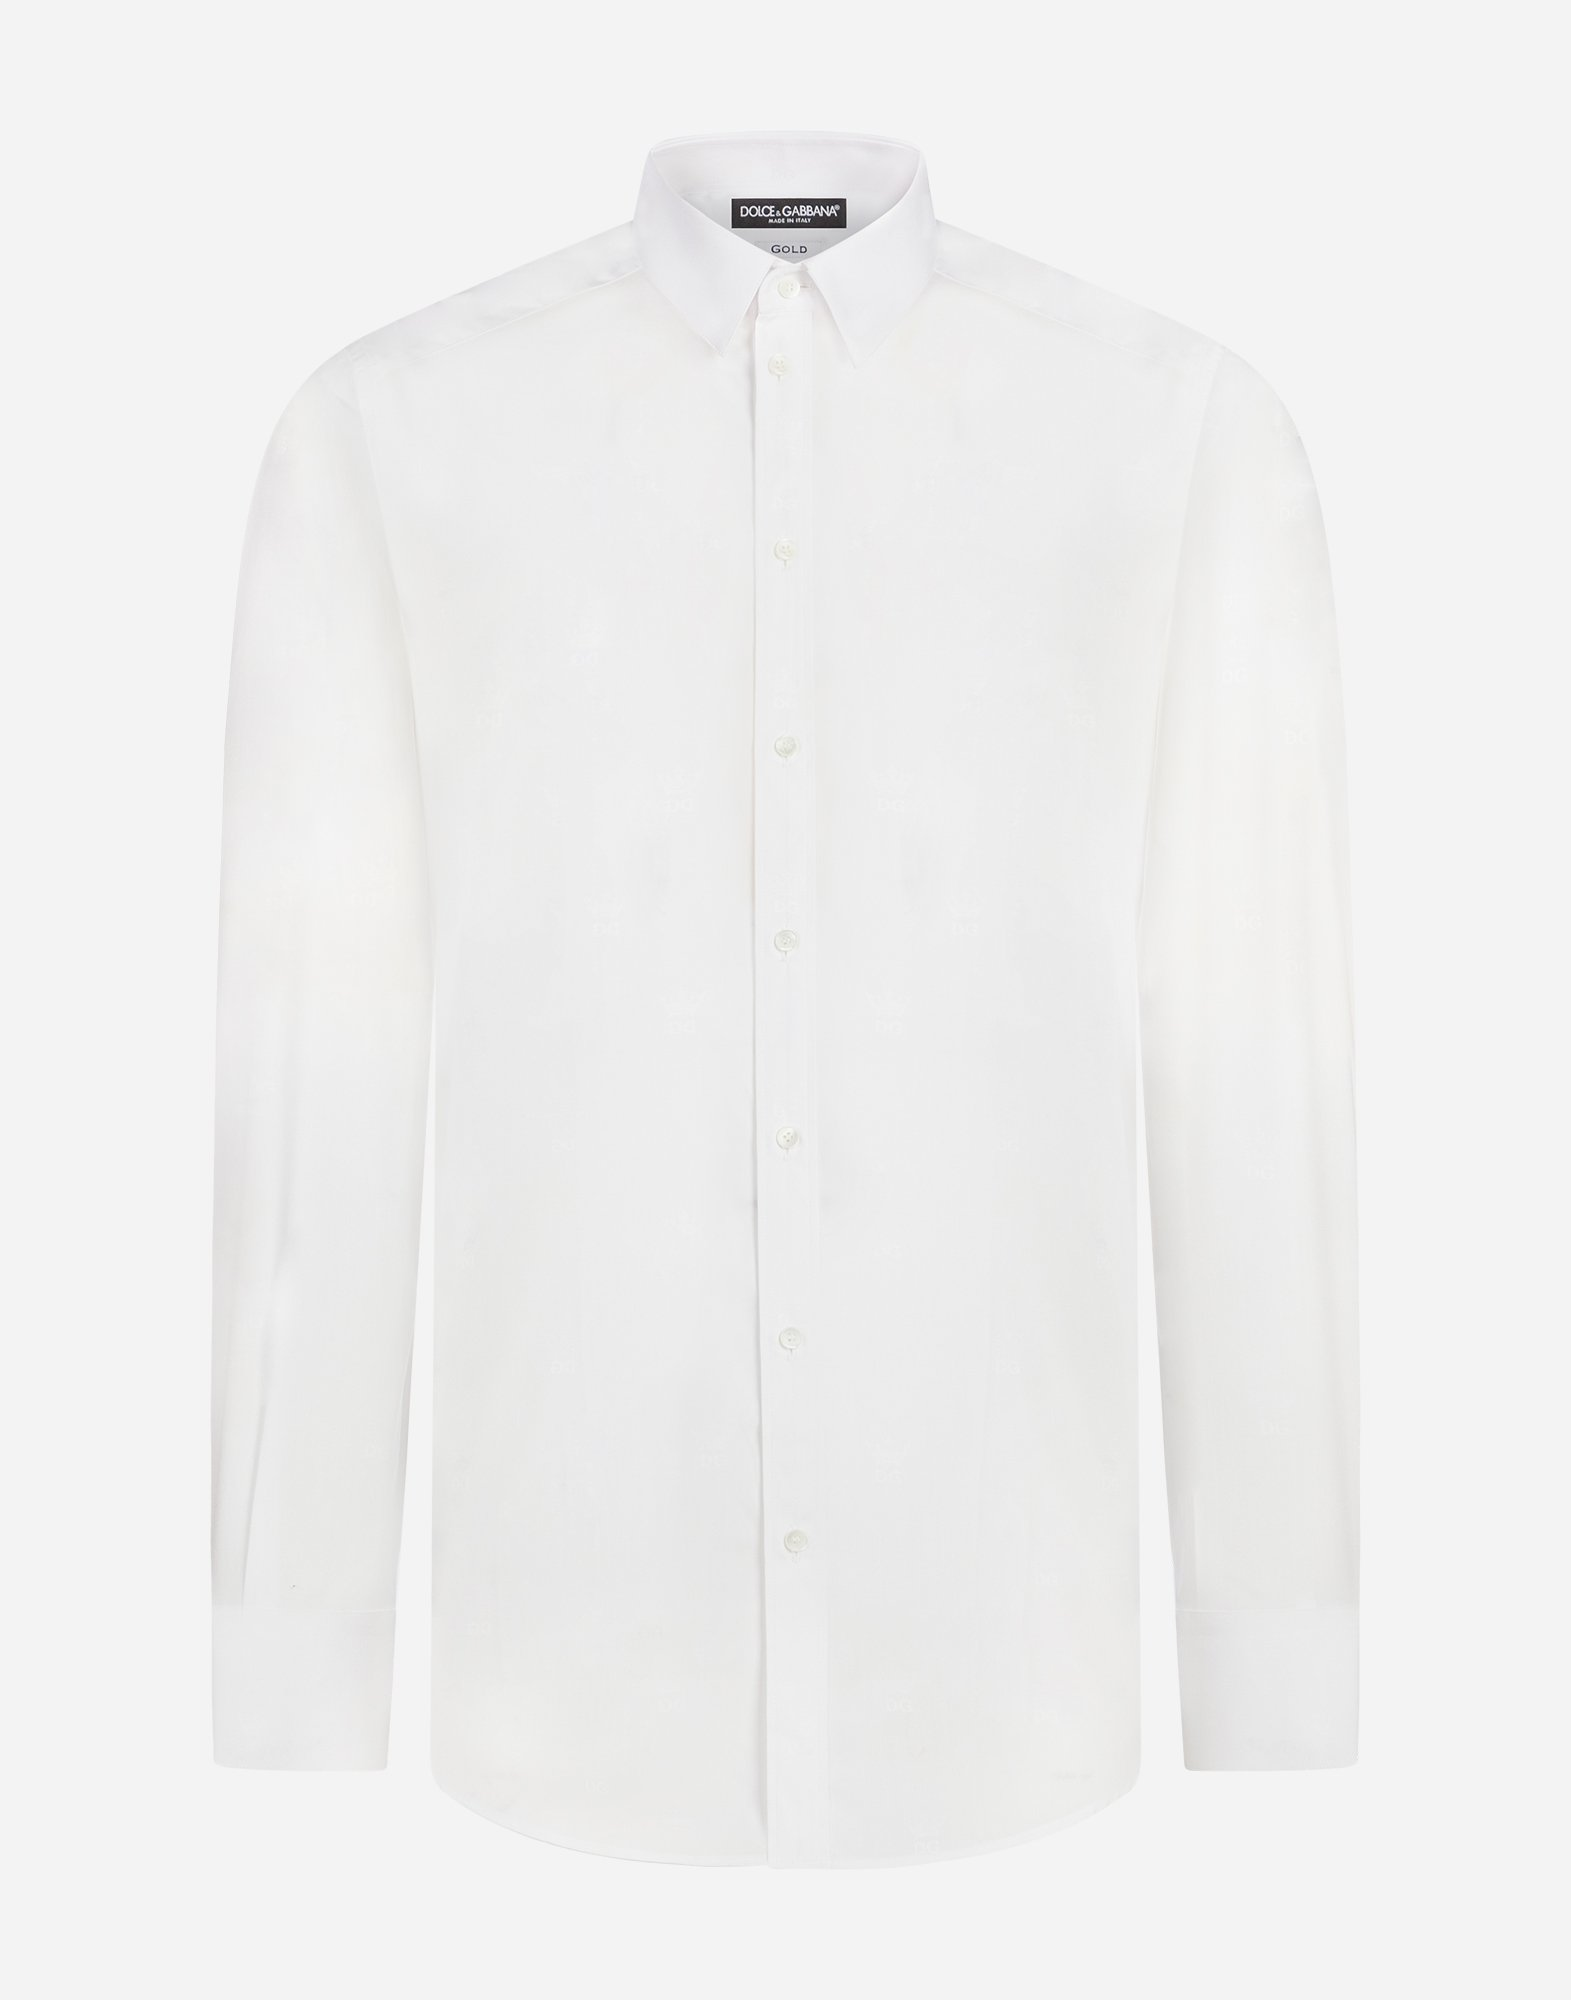 Dolce&Gabbana GOLD FIT SHIRT IN COTTON JACQUARD